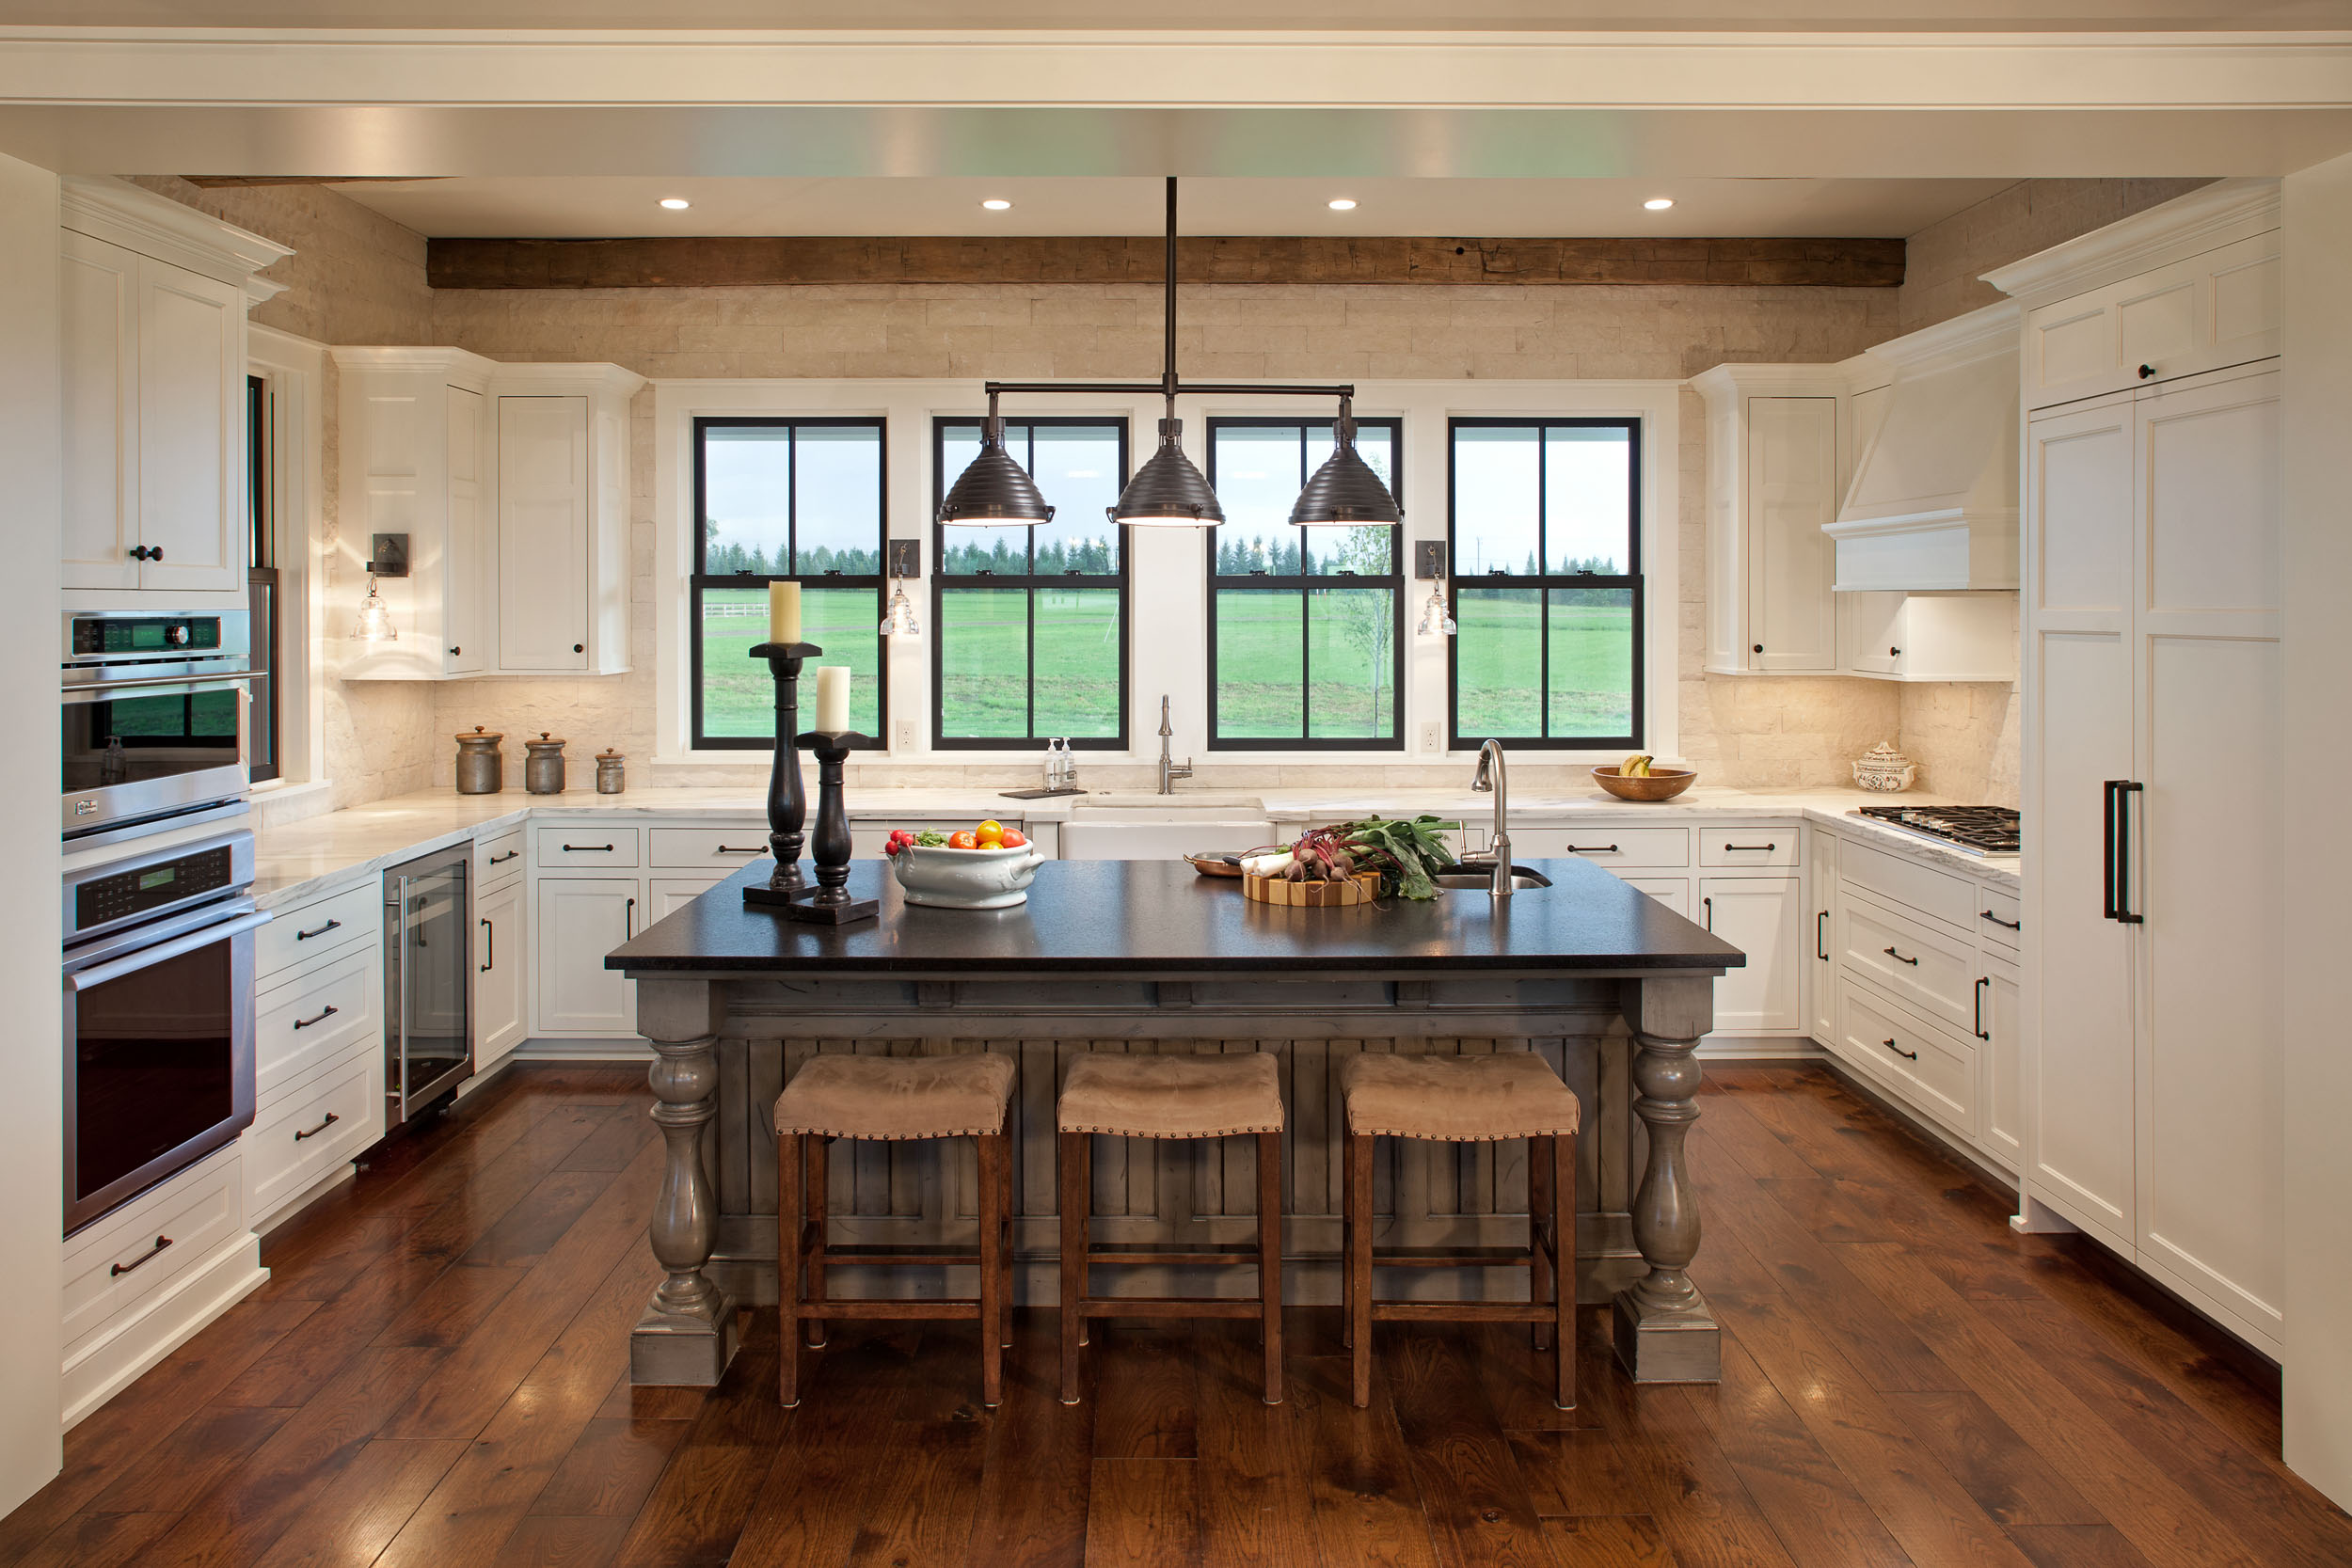 Modern Farmhouse Kitchen Image